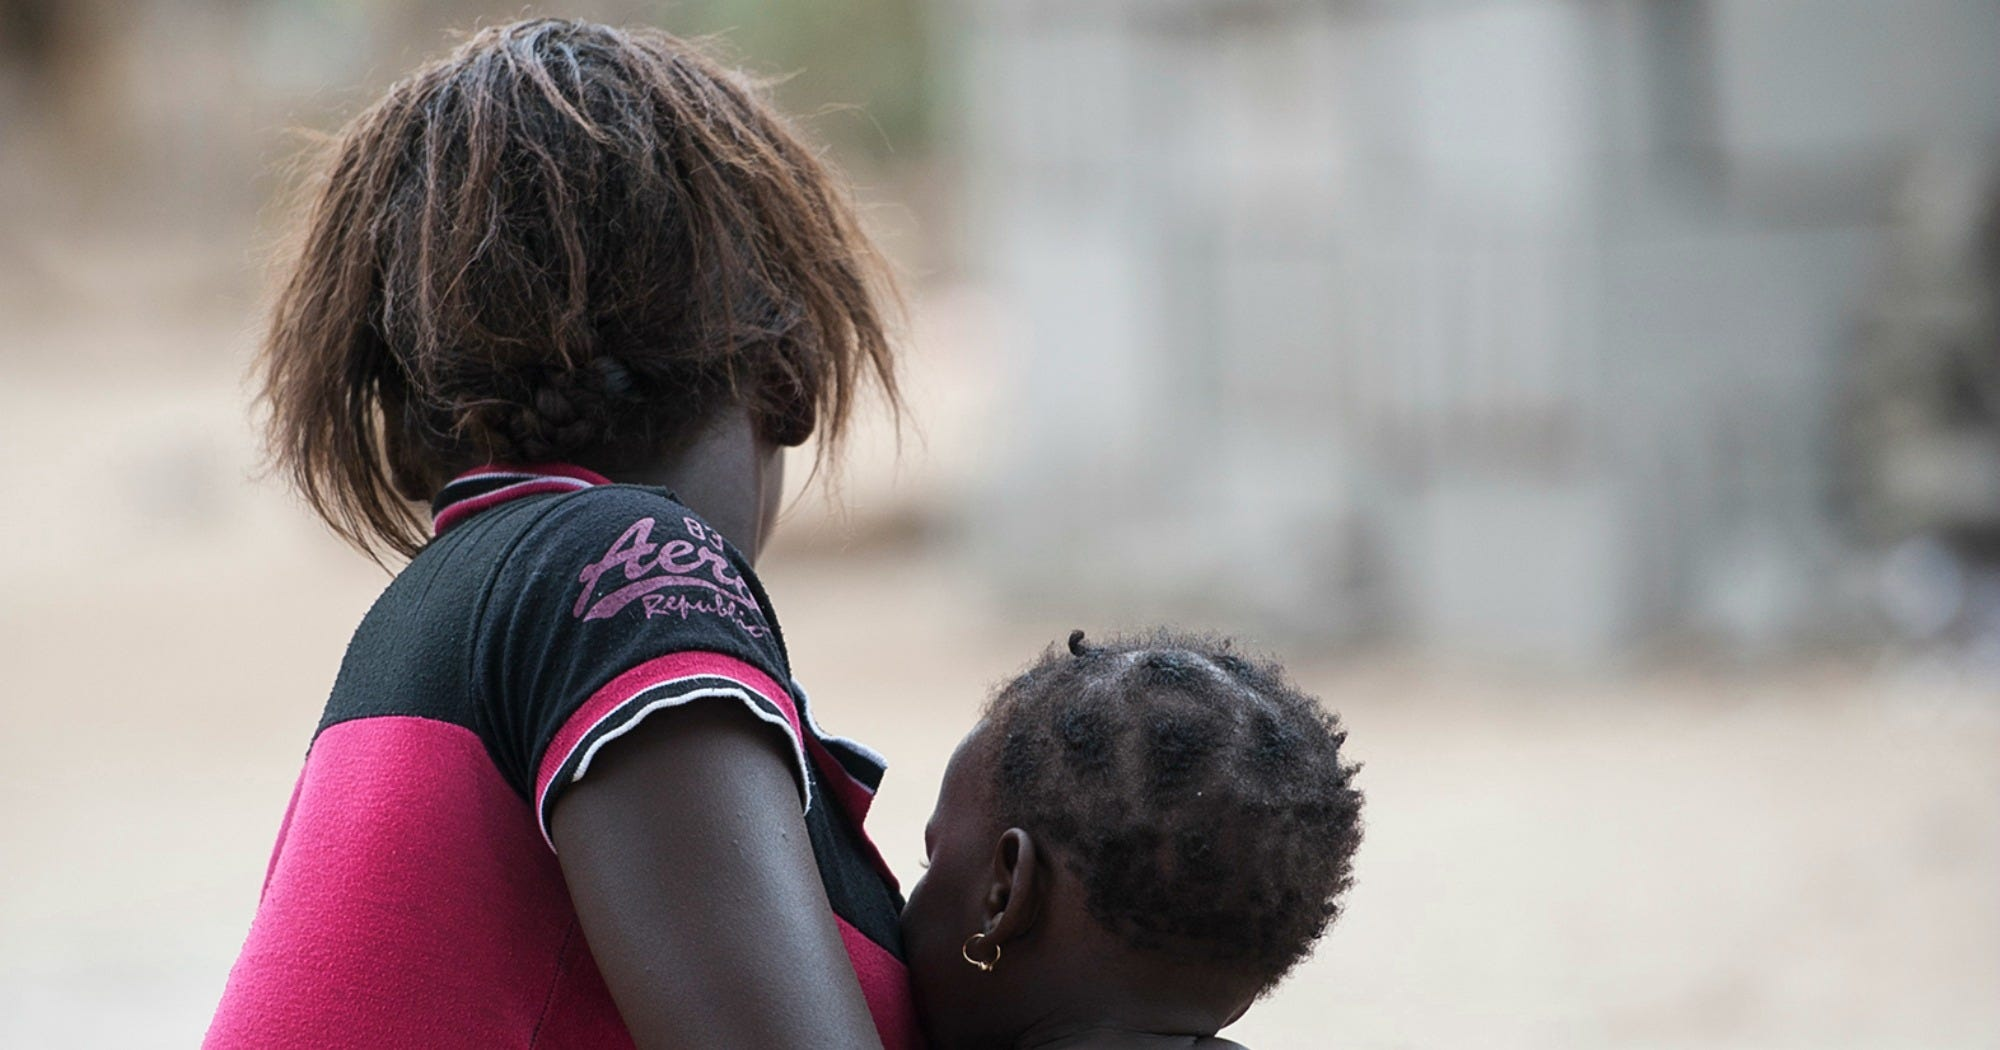 Child Marriages In Africa Are Increasing At Frightening Rates